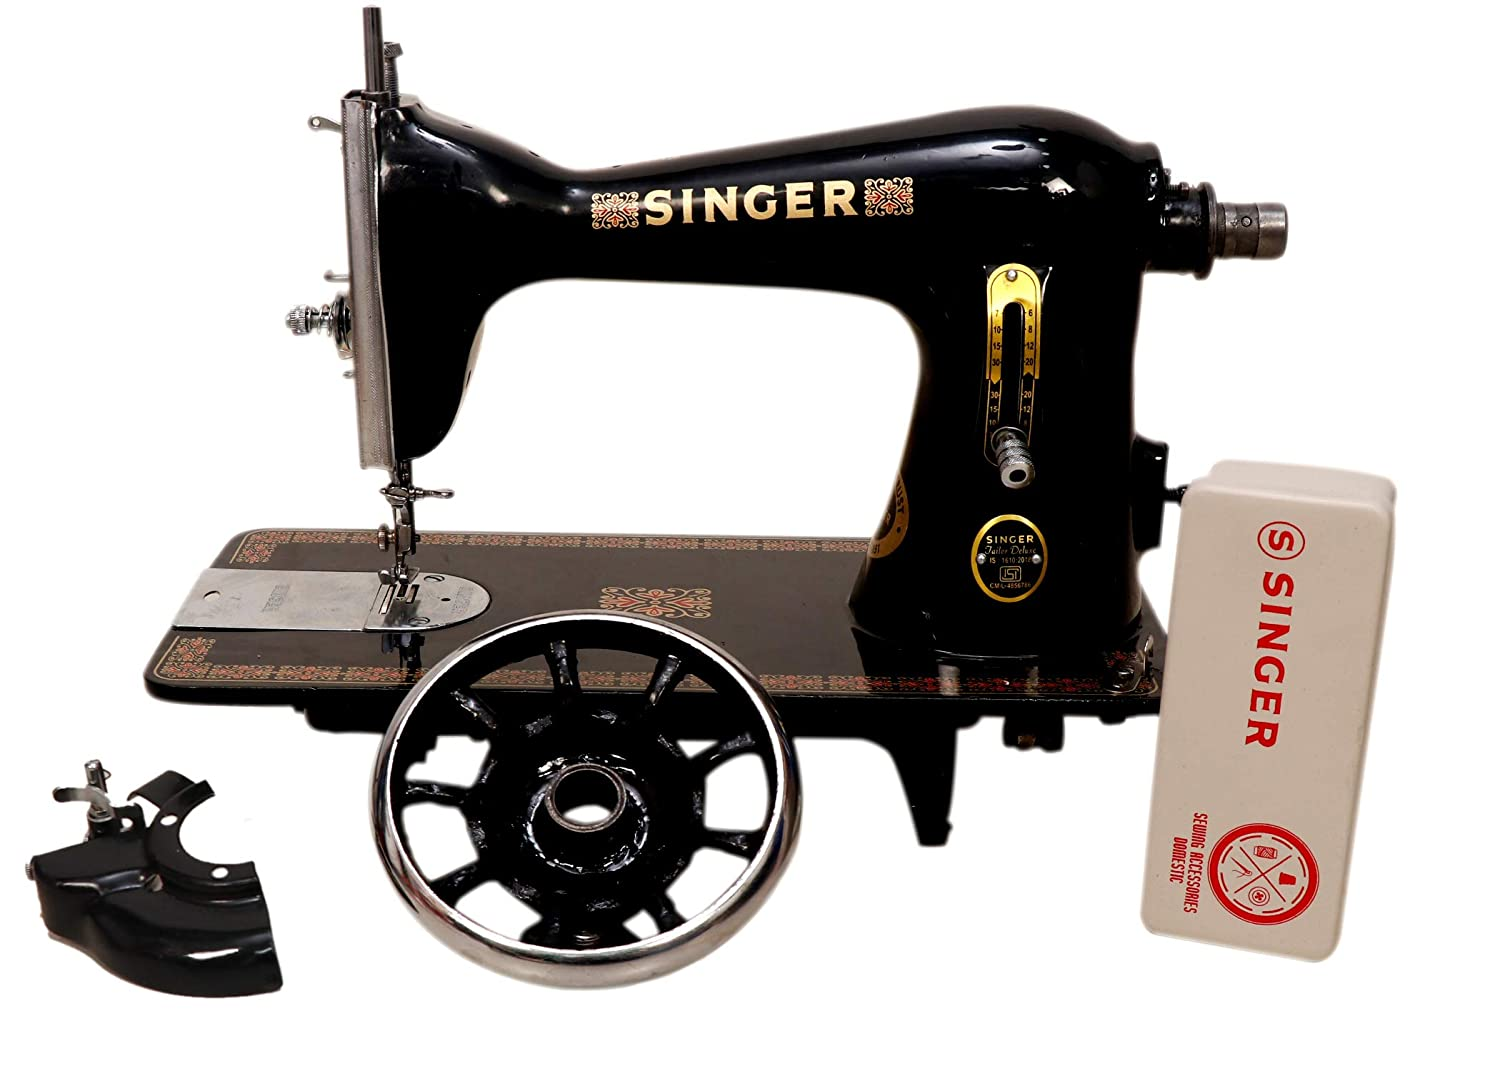 Singer Tailor Deluxe Sewing Machine Head